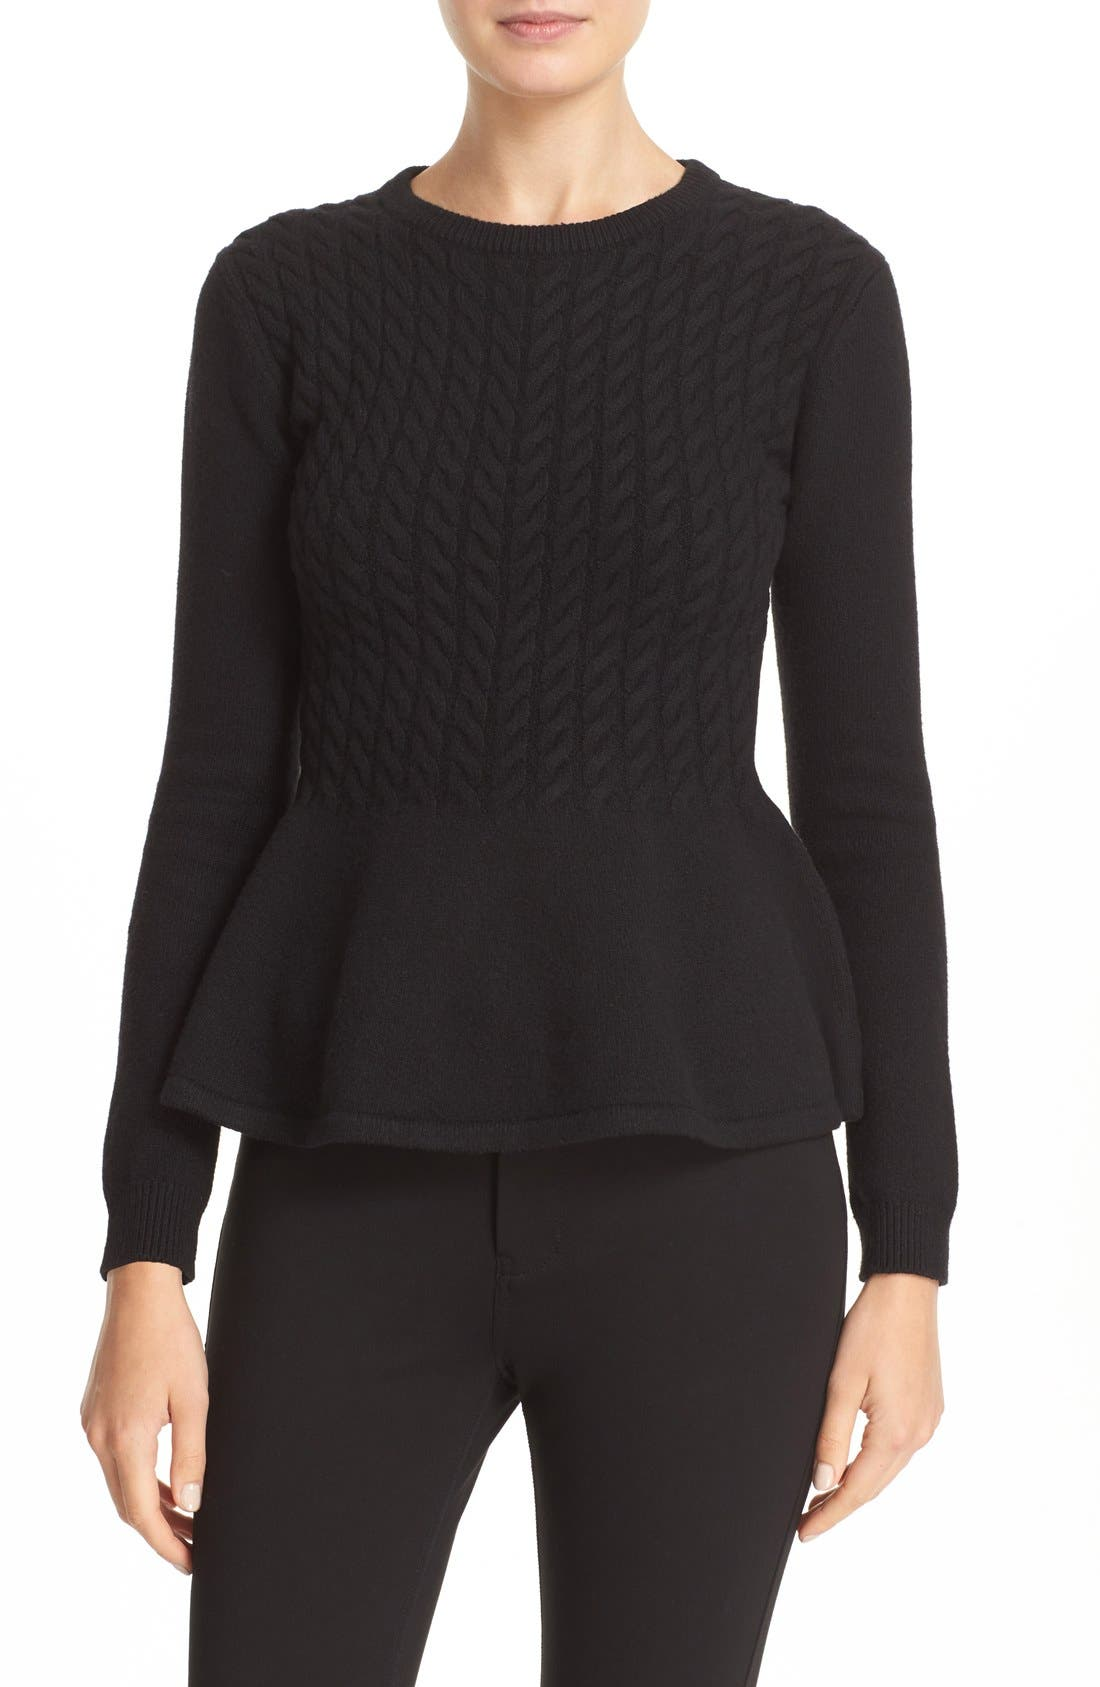 TED BAKER LONDON,                             'Mereda' Cable Knit Peplum Sweater,                             Main thumbnail 1, color,                             001